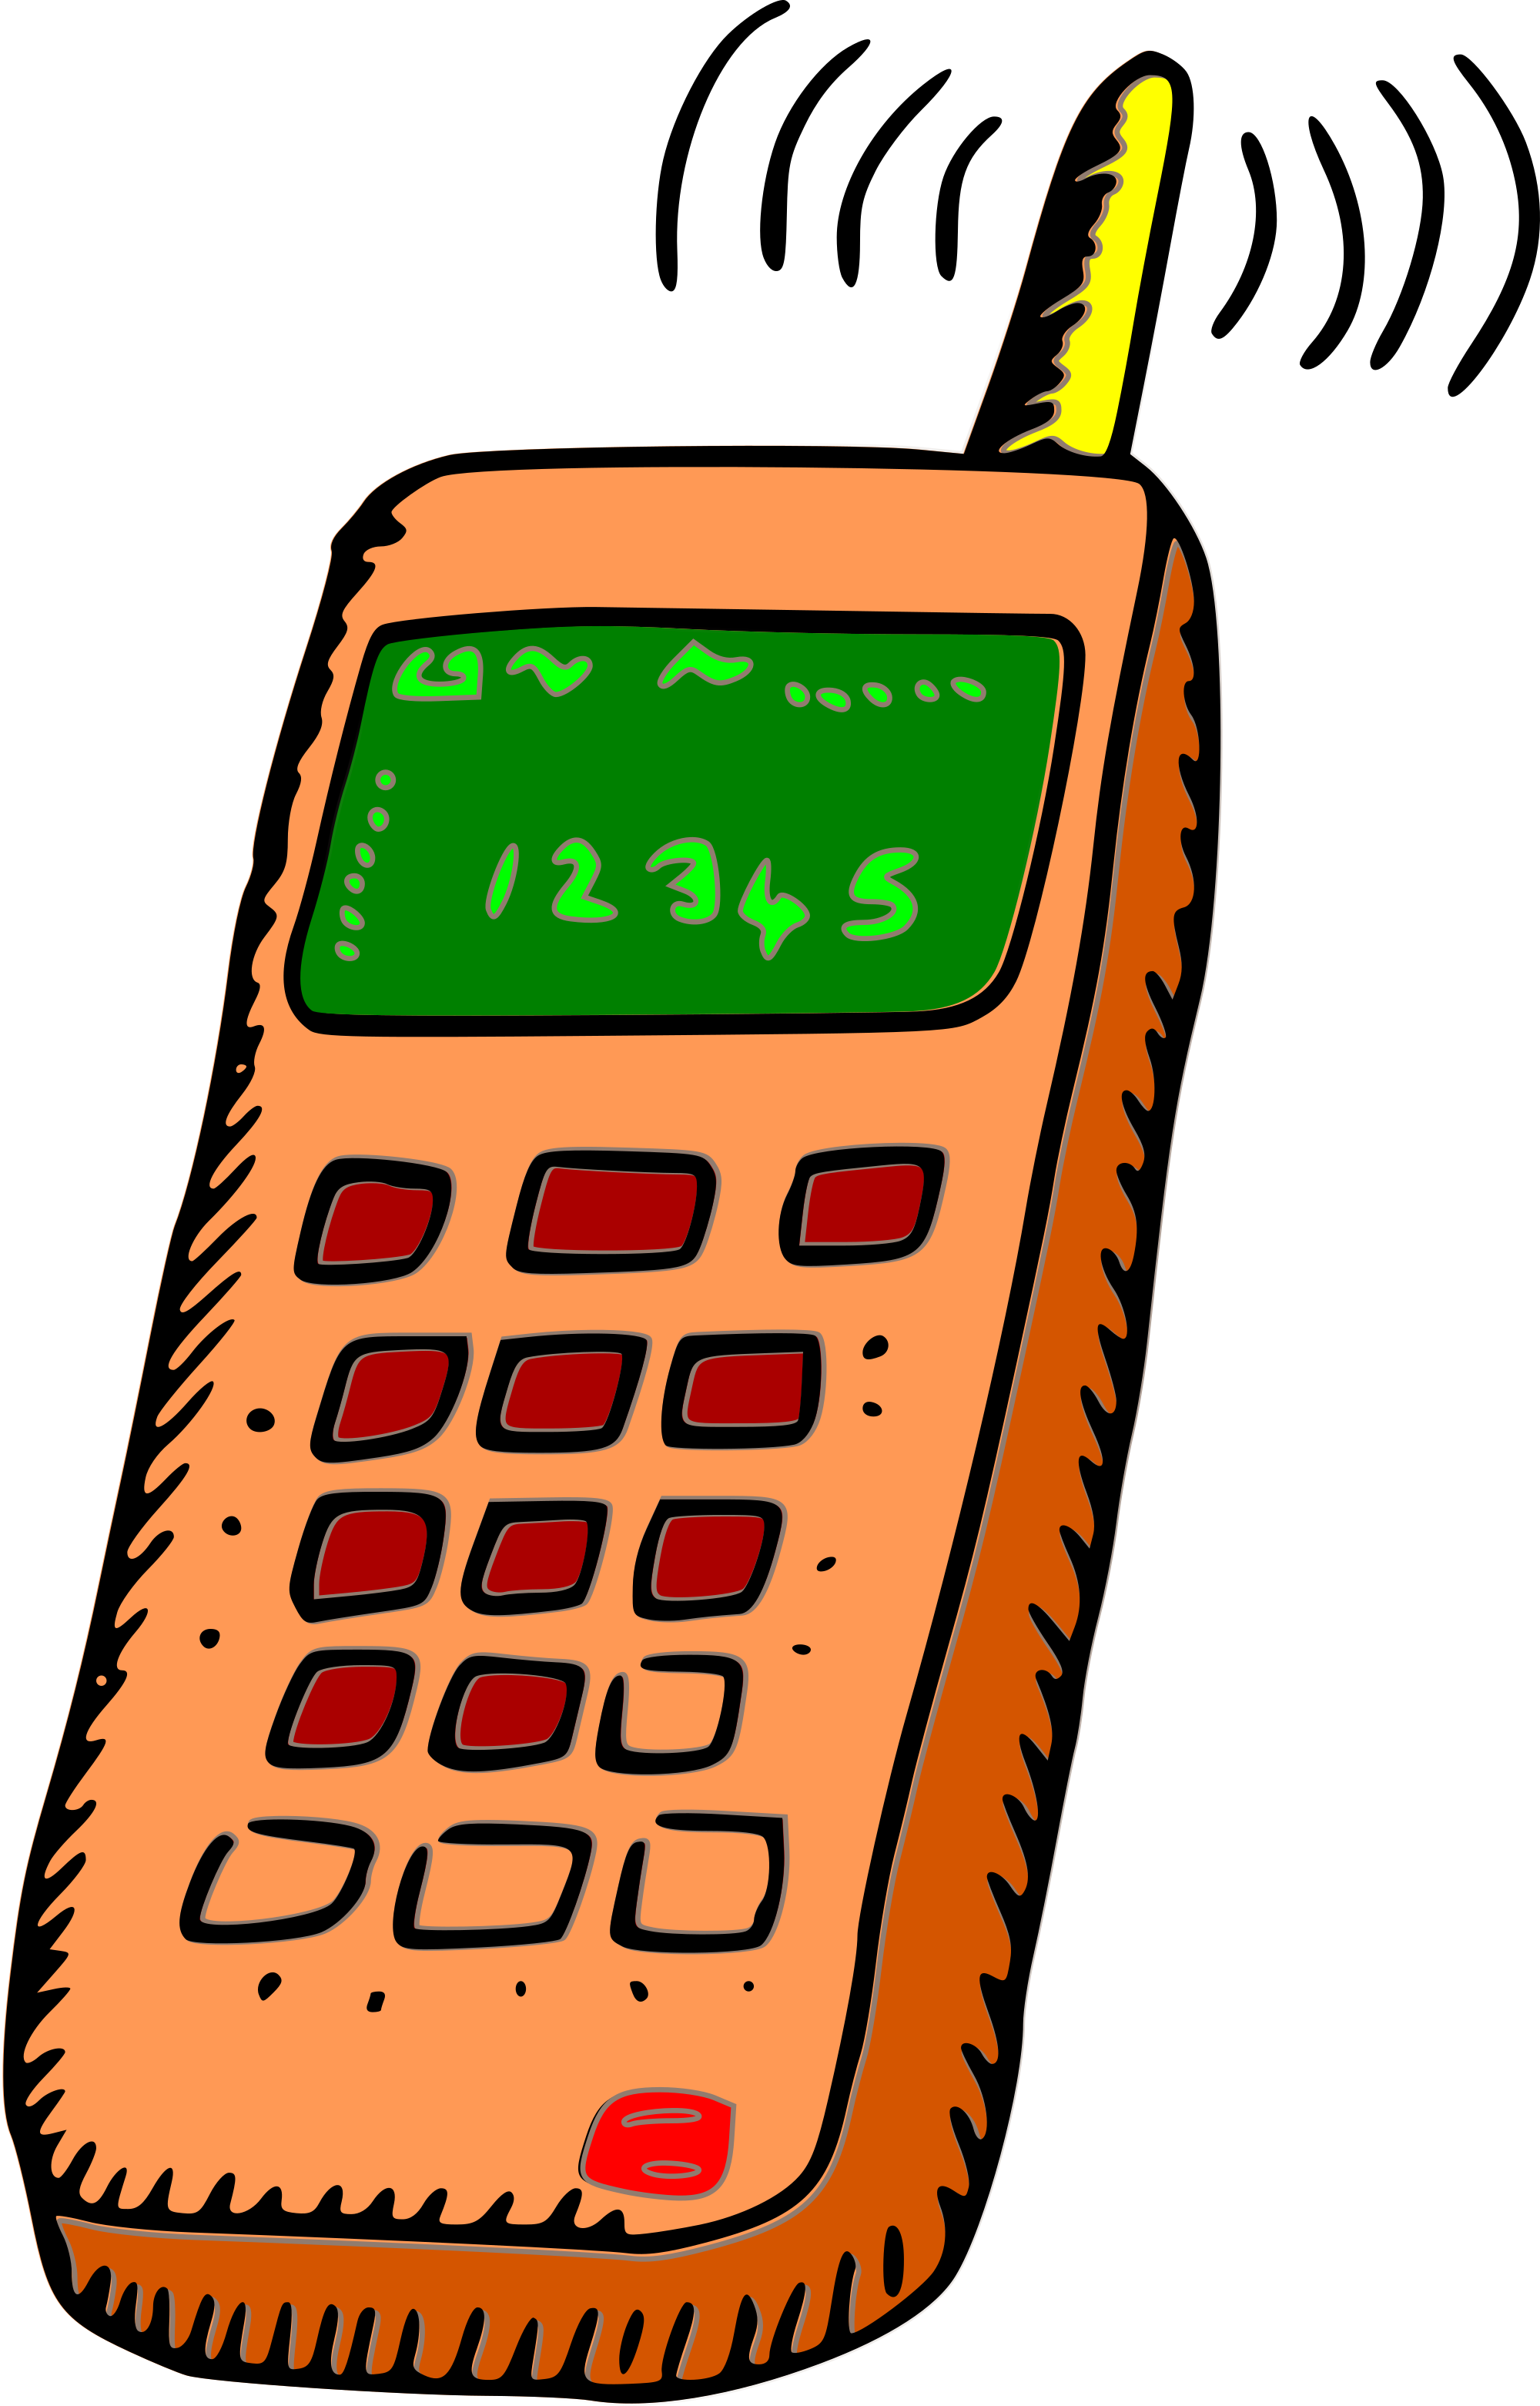 Old cell phone clipart.